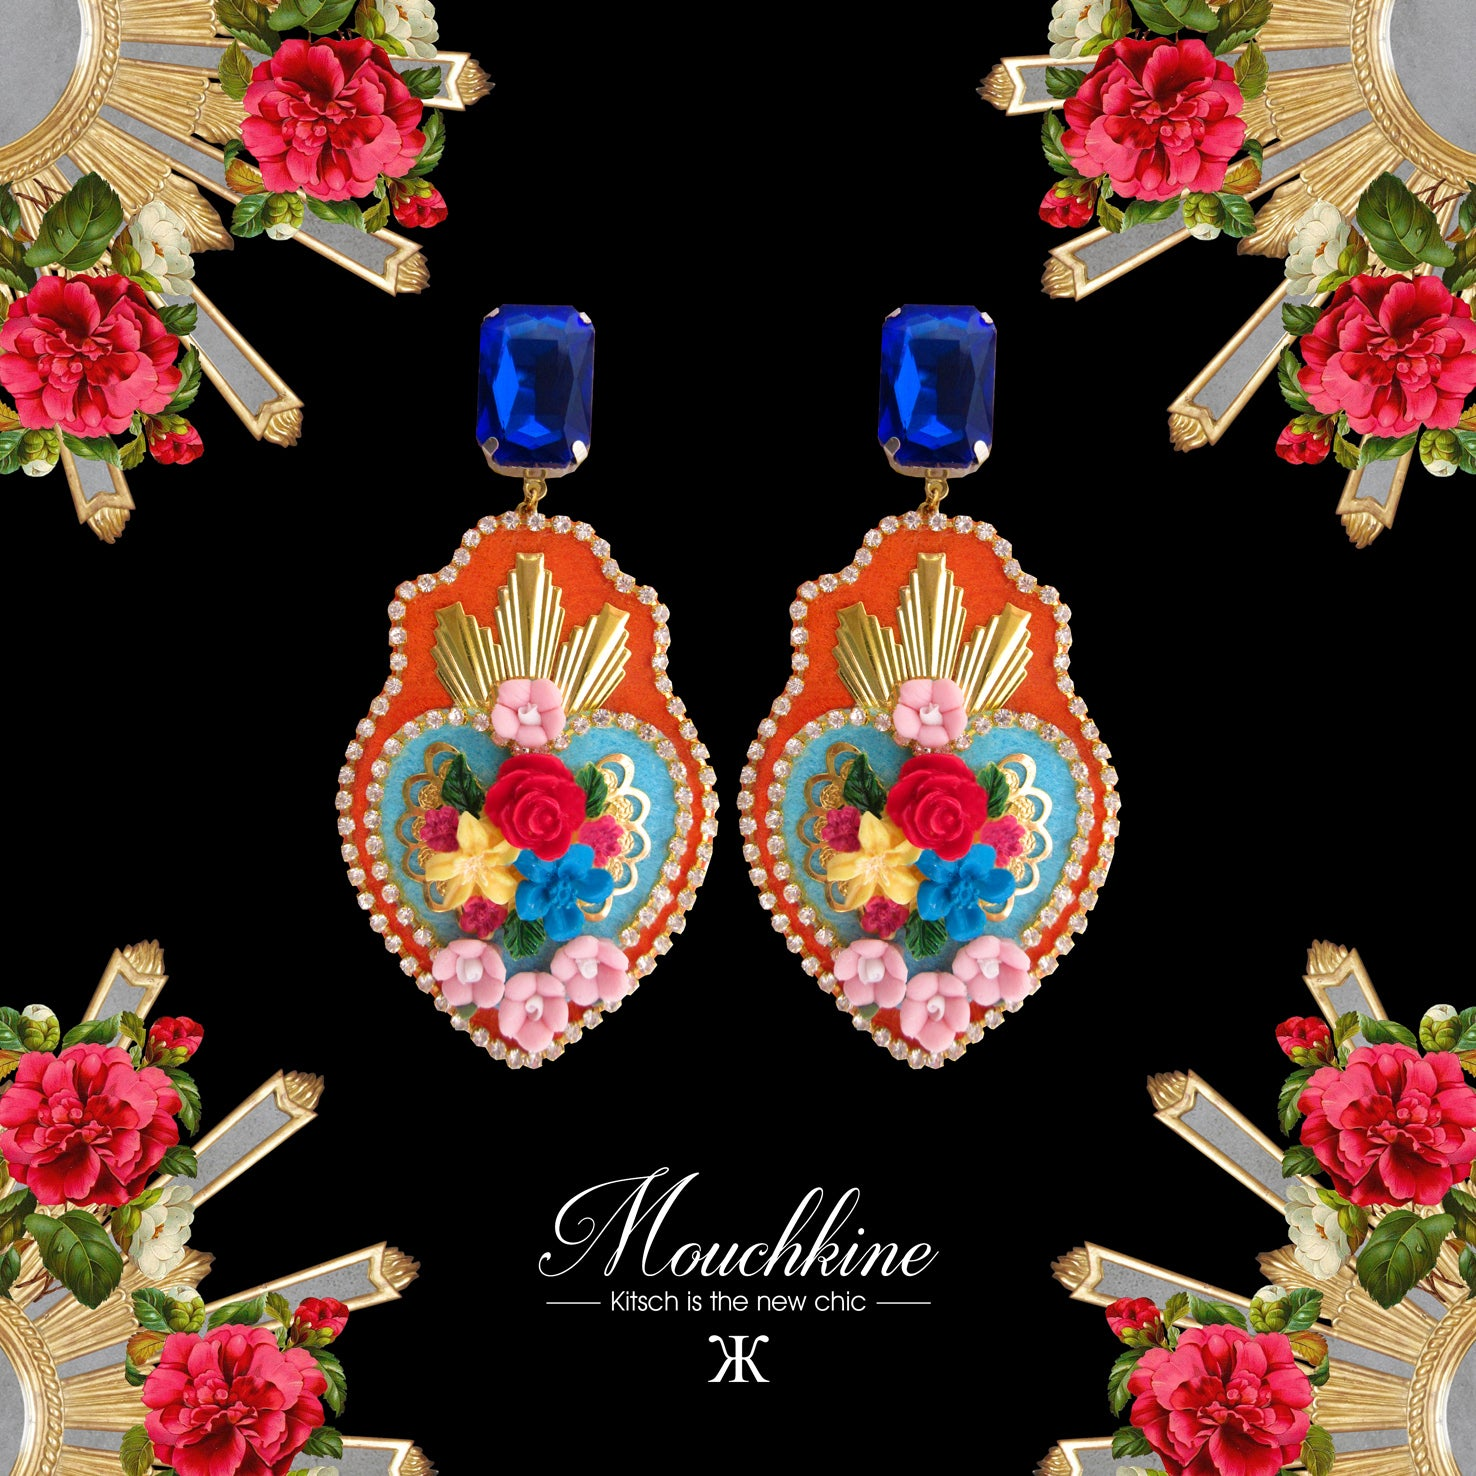 Mouchkine Jewelry flourish Ex-voto earrings. a very light weight and a real comfort and pleasure to wear it. handmade and made in France,  a haute couture jewel to sublimate your style. Mouchkine ex-voto boucles d'oreilles, couture et tendance pour un style sublime.